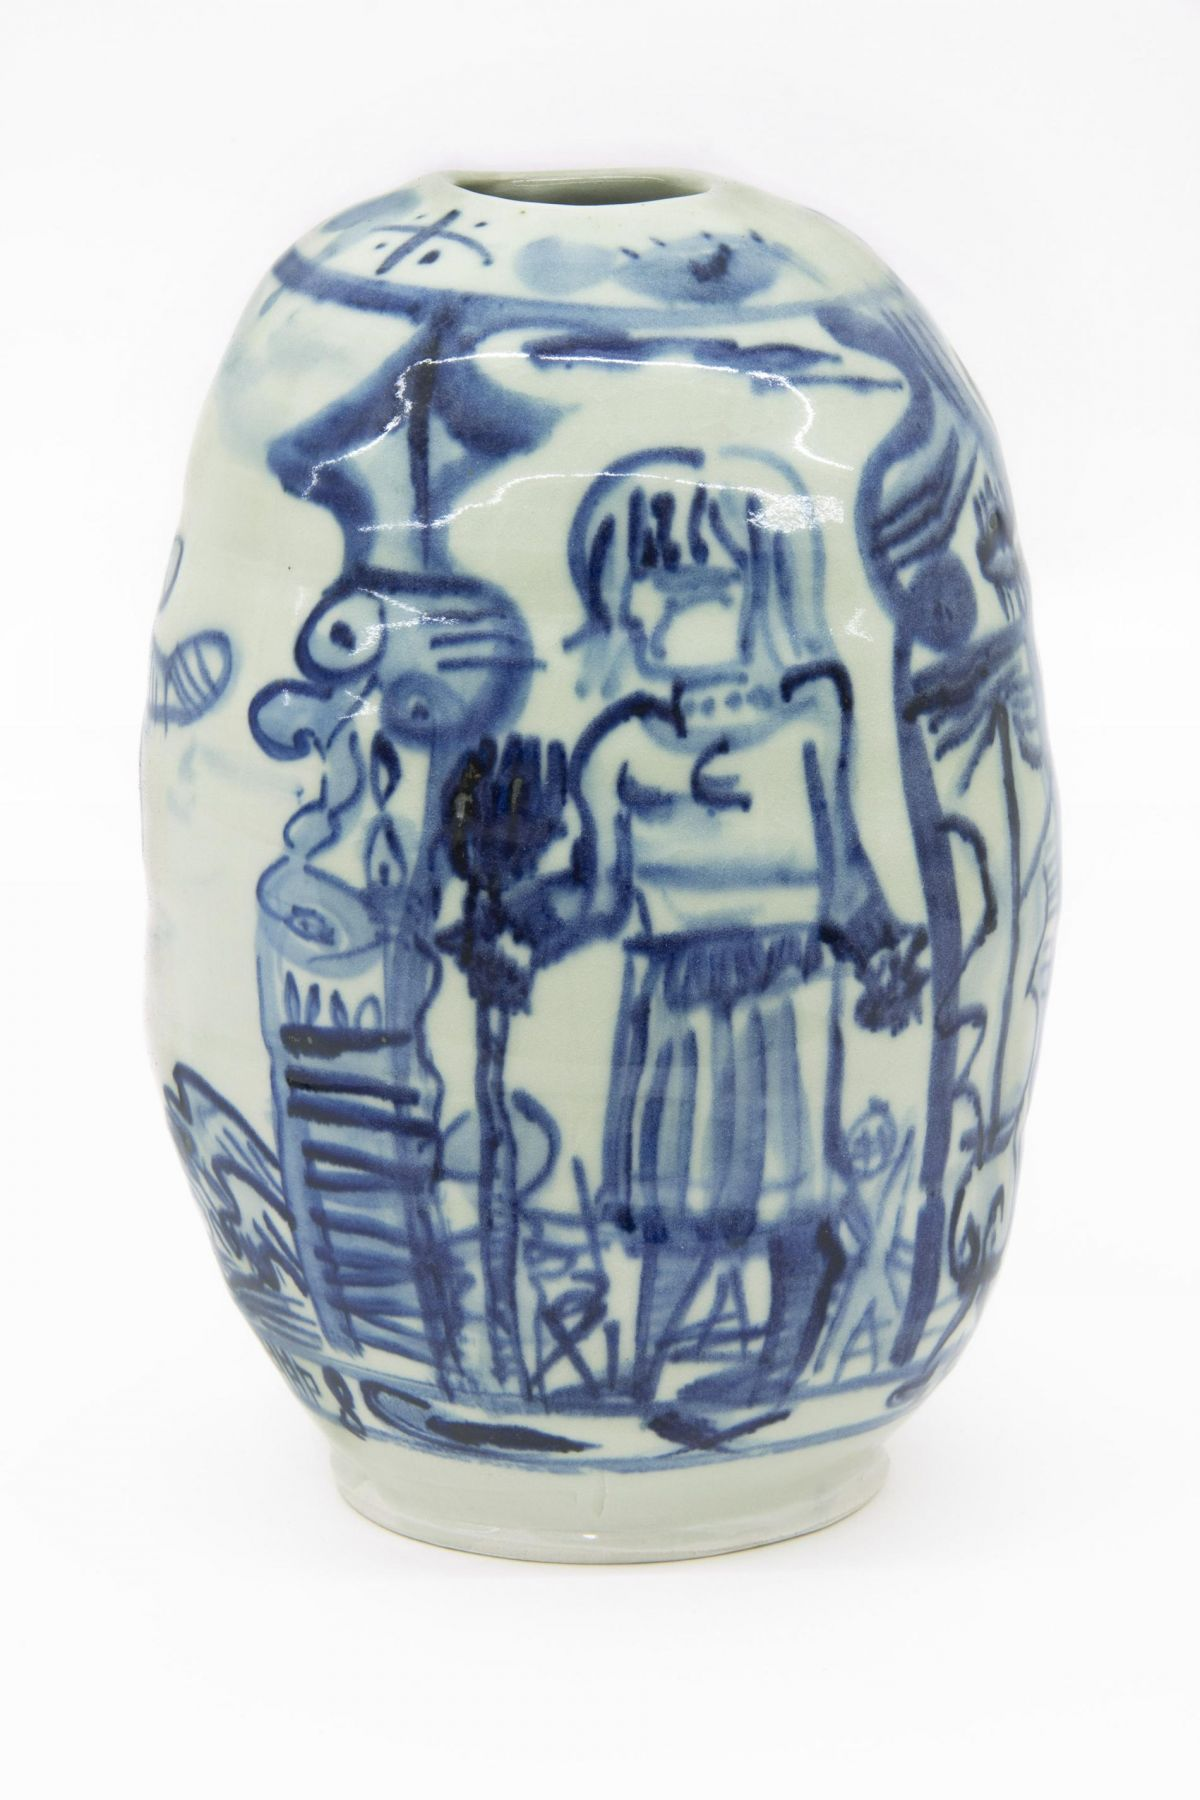 , Over Seas, 1980, Glazed porcelain, 10 x 6 1/2 x 6 1/2 in.